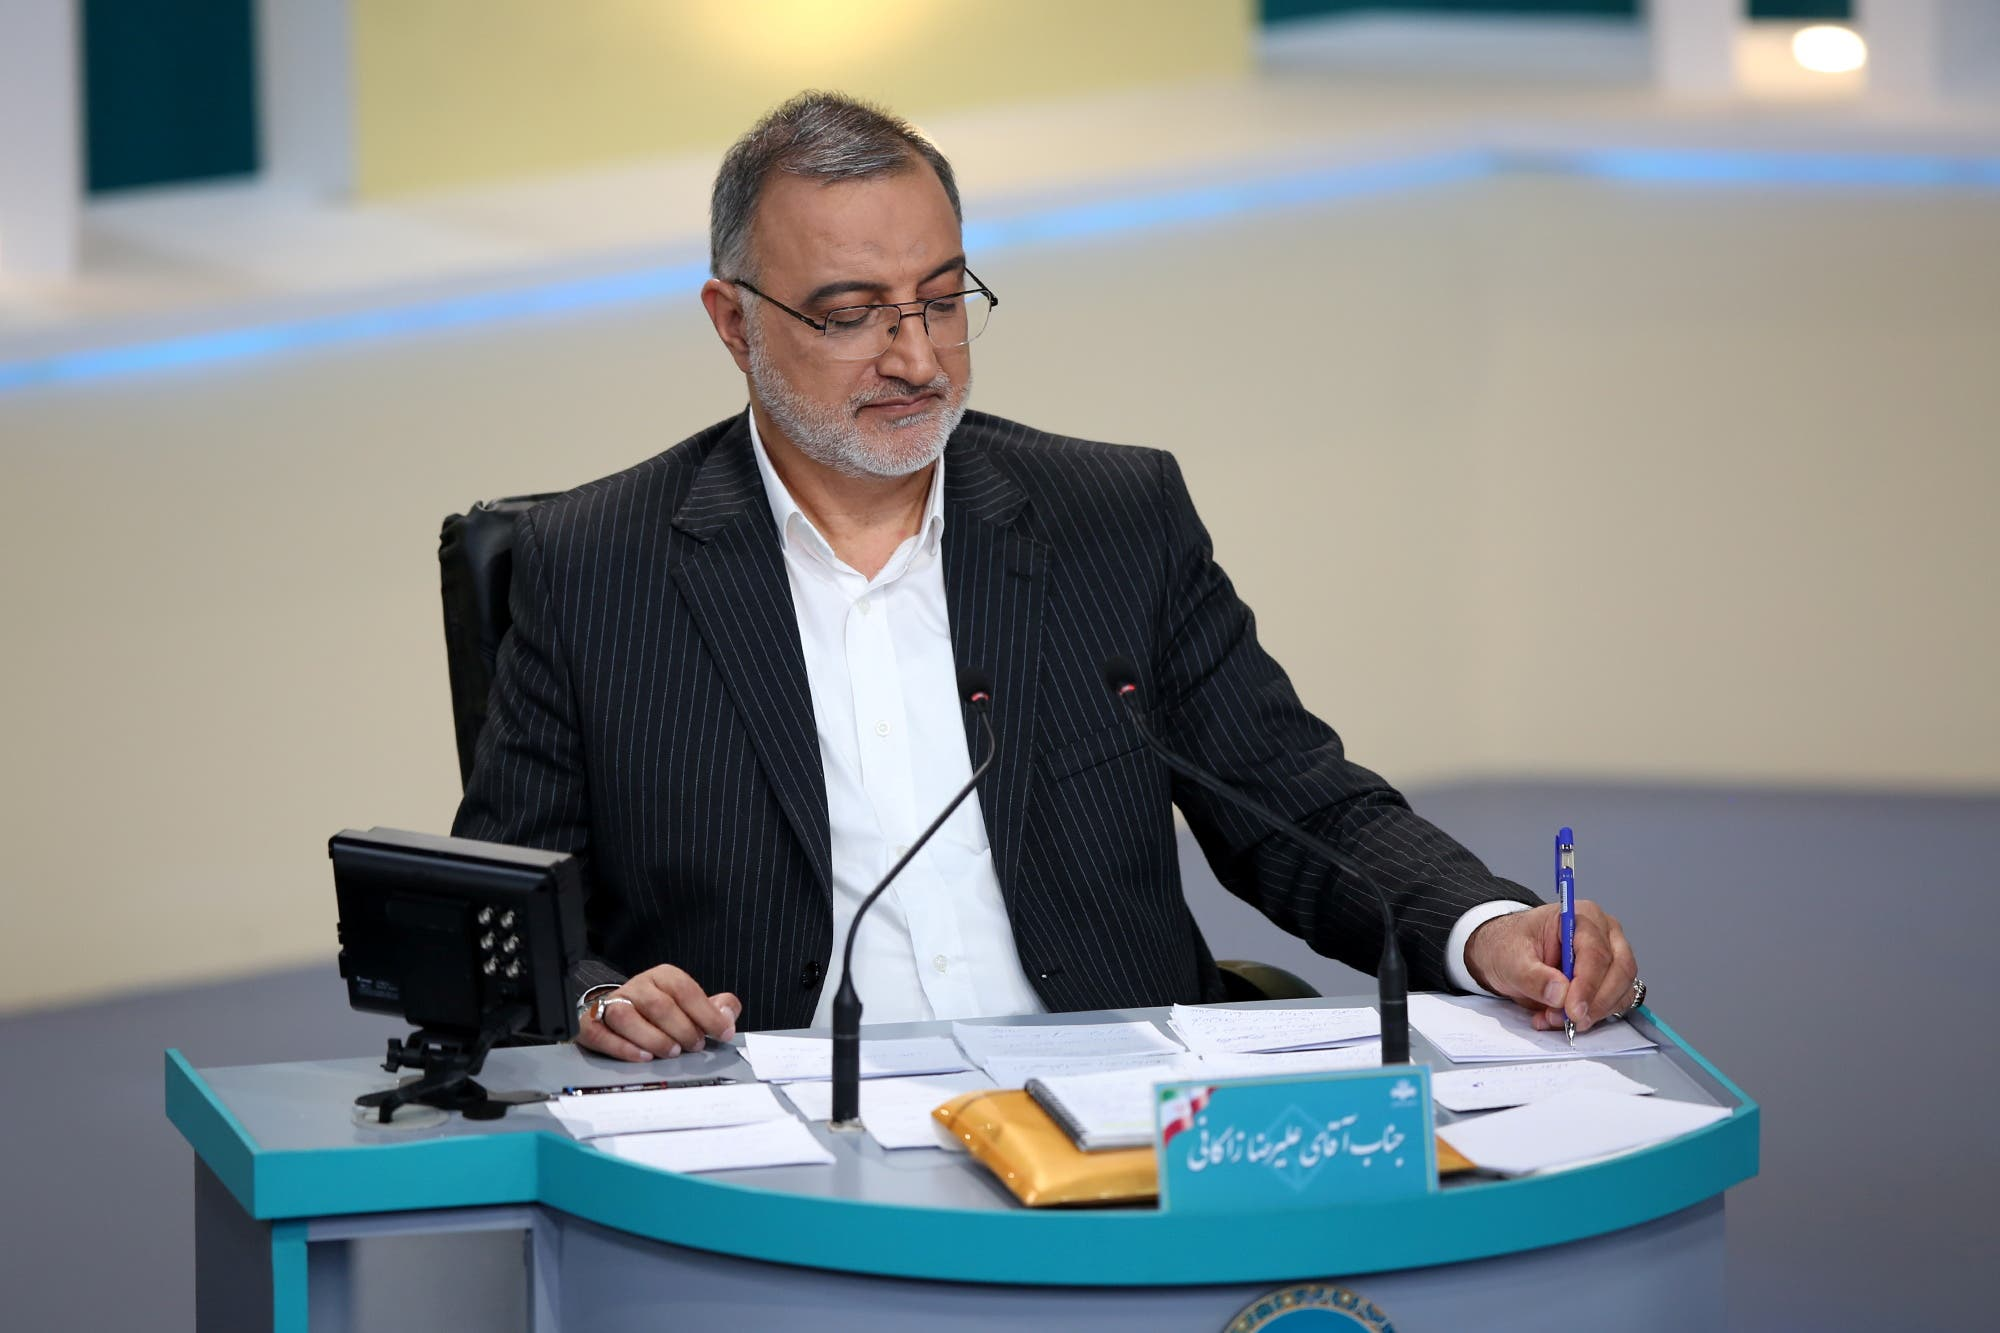 Two candidates withdrew from the elections in Iran – reformist and hardliner